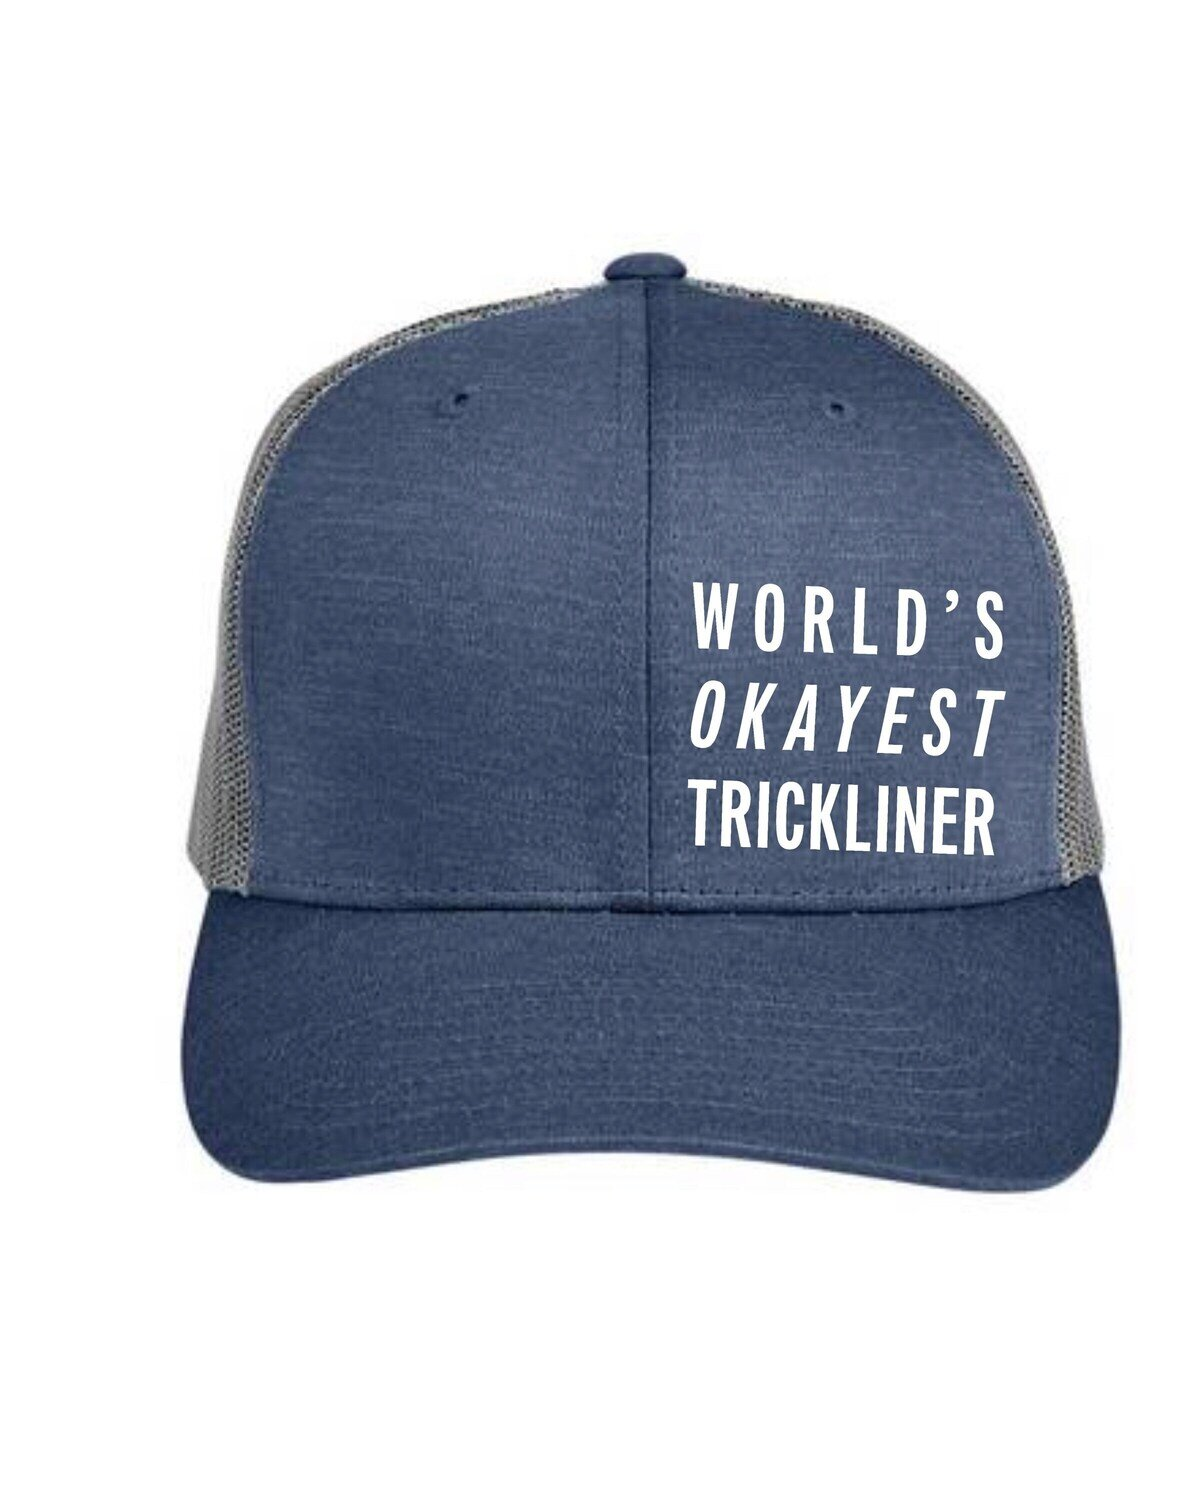 How Not To Highline Official Hat! Worlds Okayest Trickliner , Ryan Jenks, Super Good Enough!